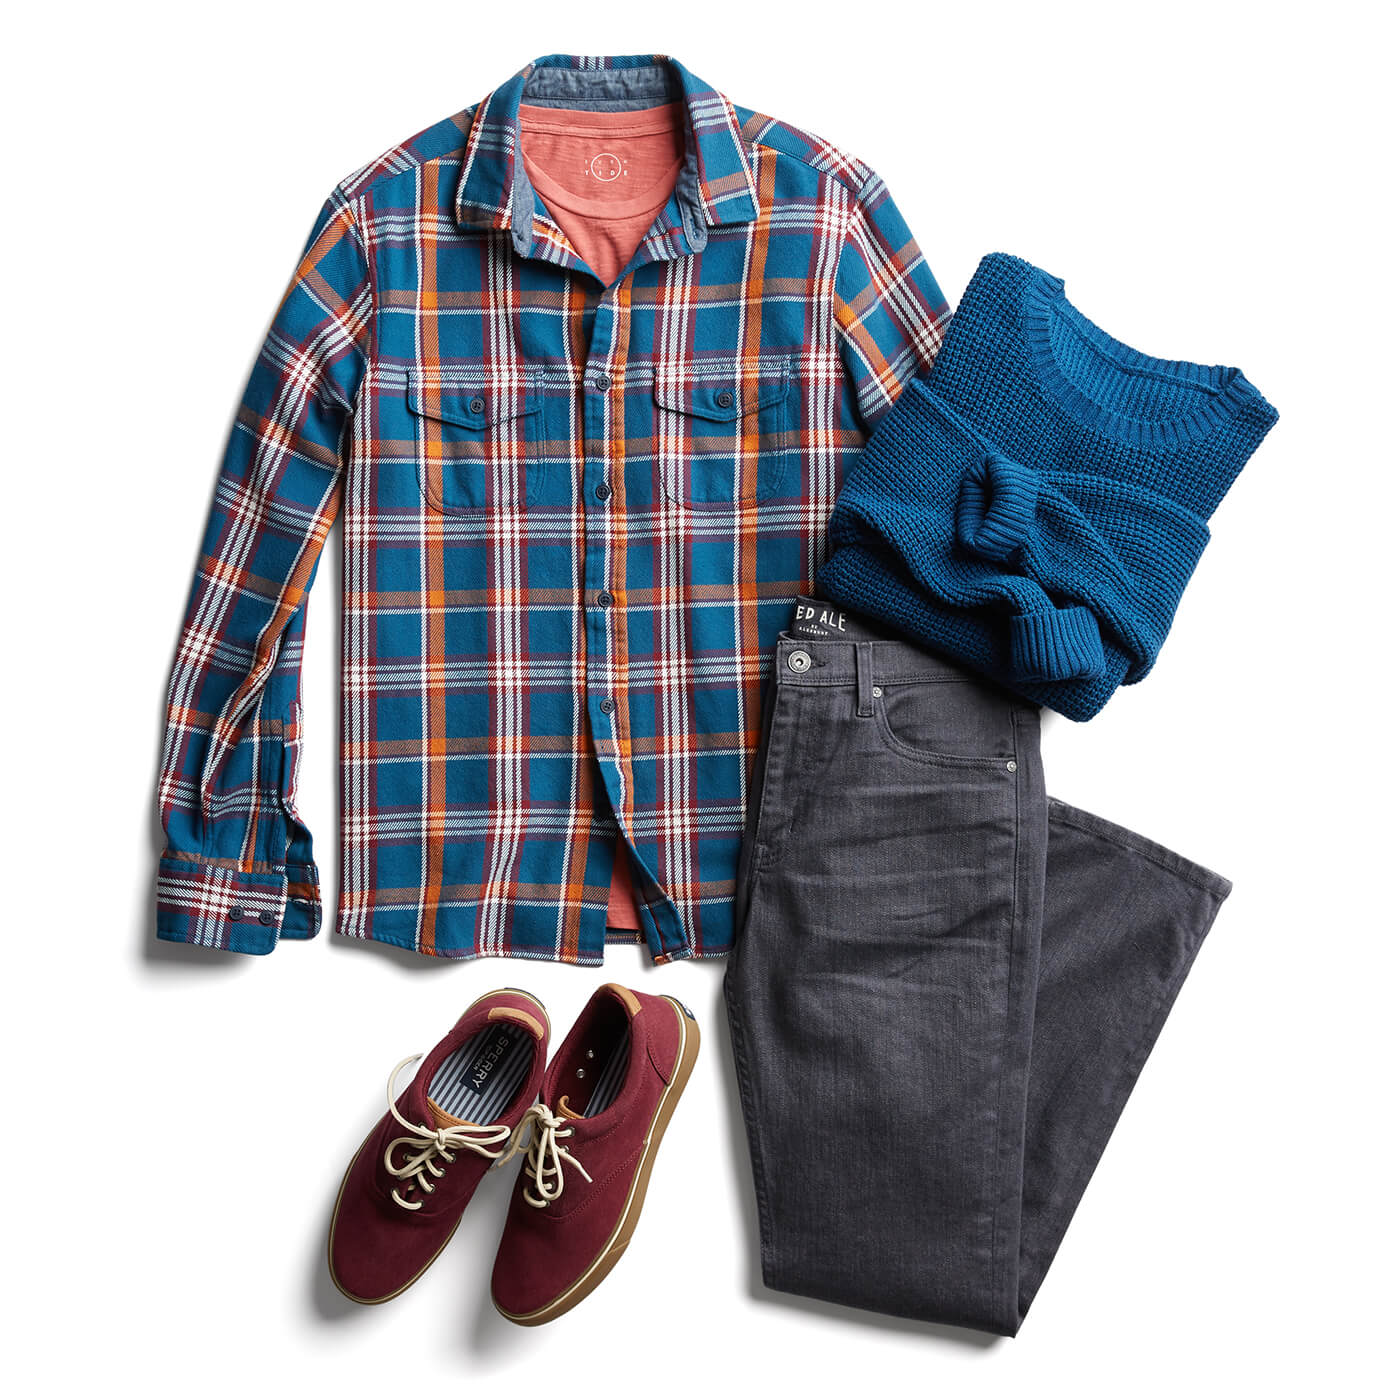 Men's Thanksgiving Outfit